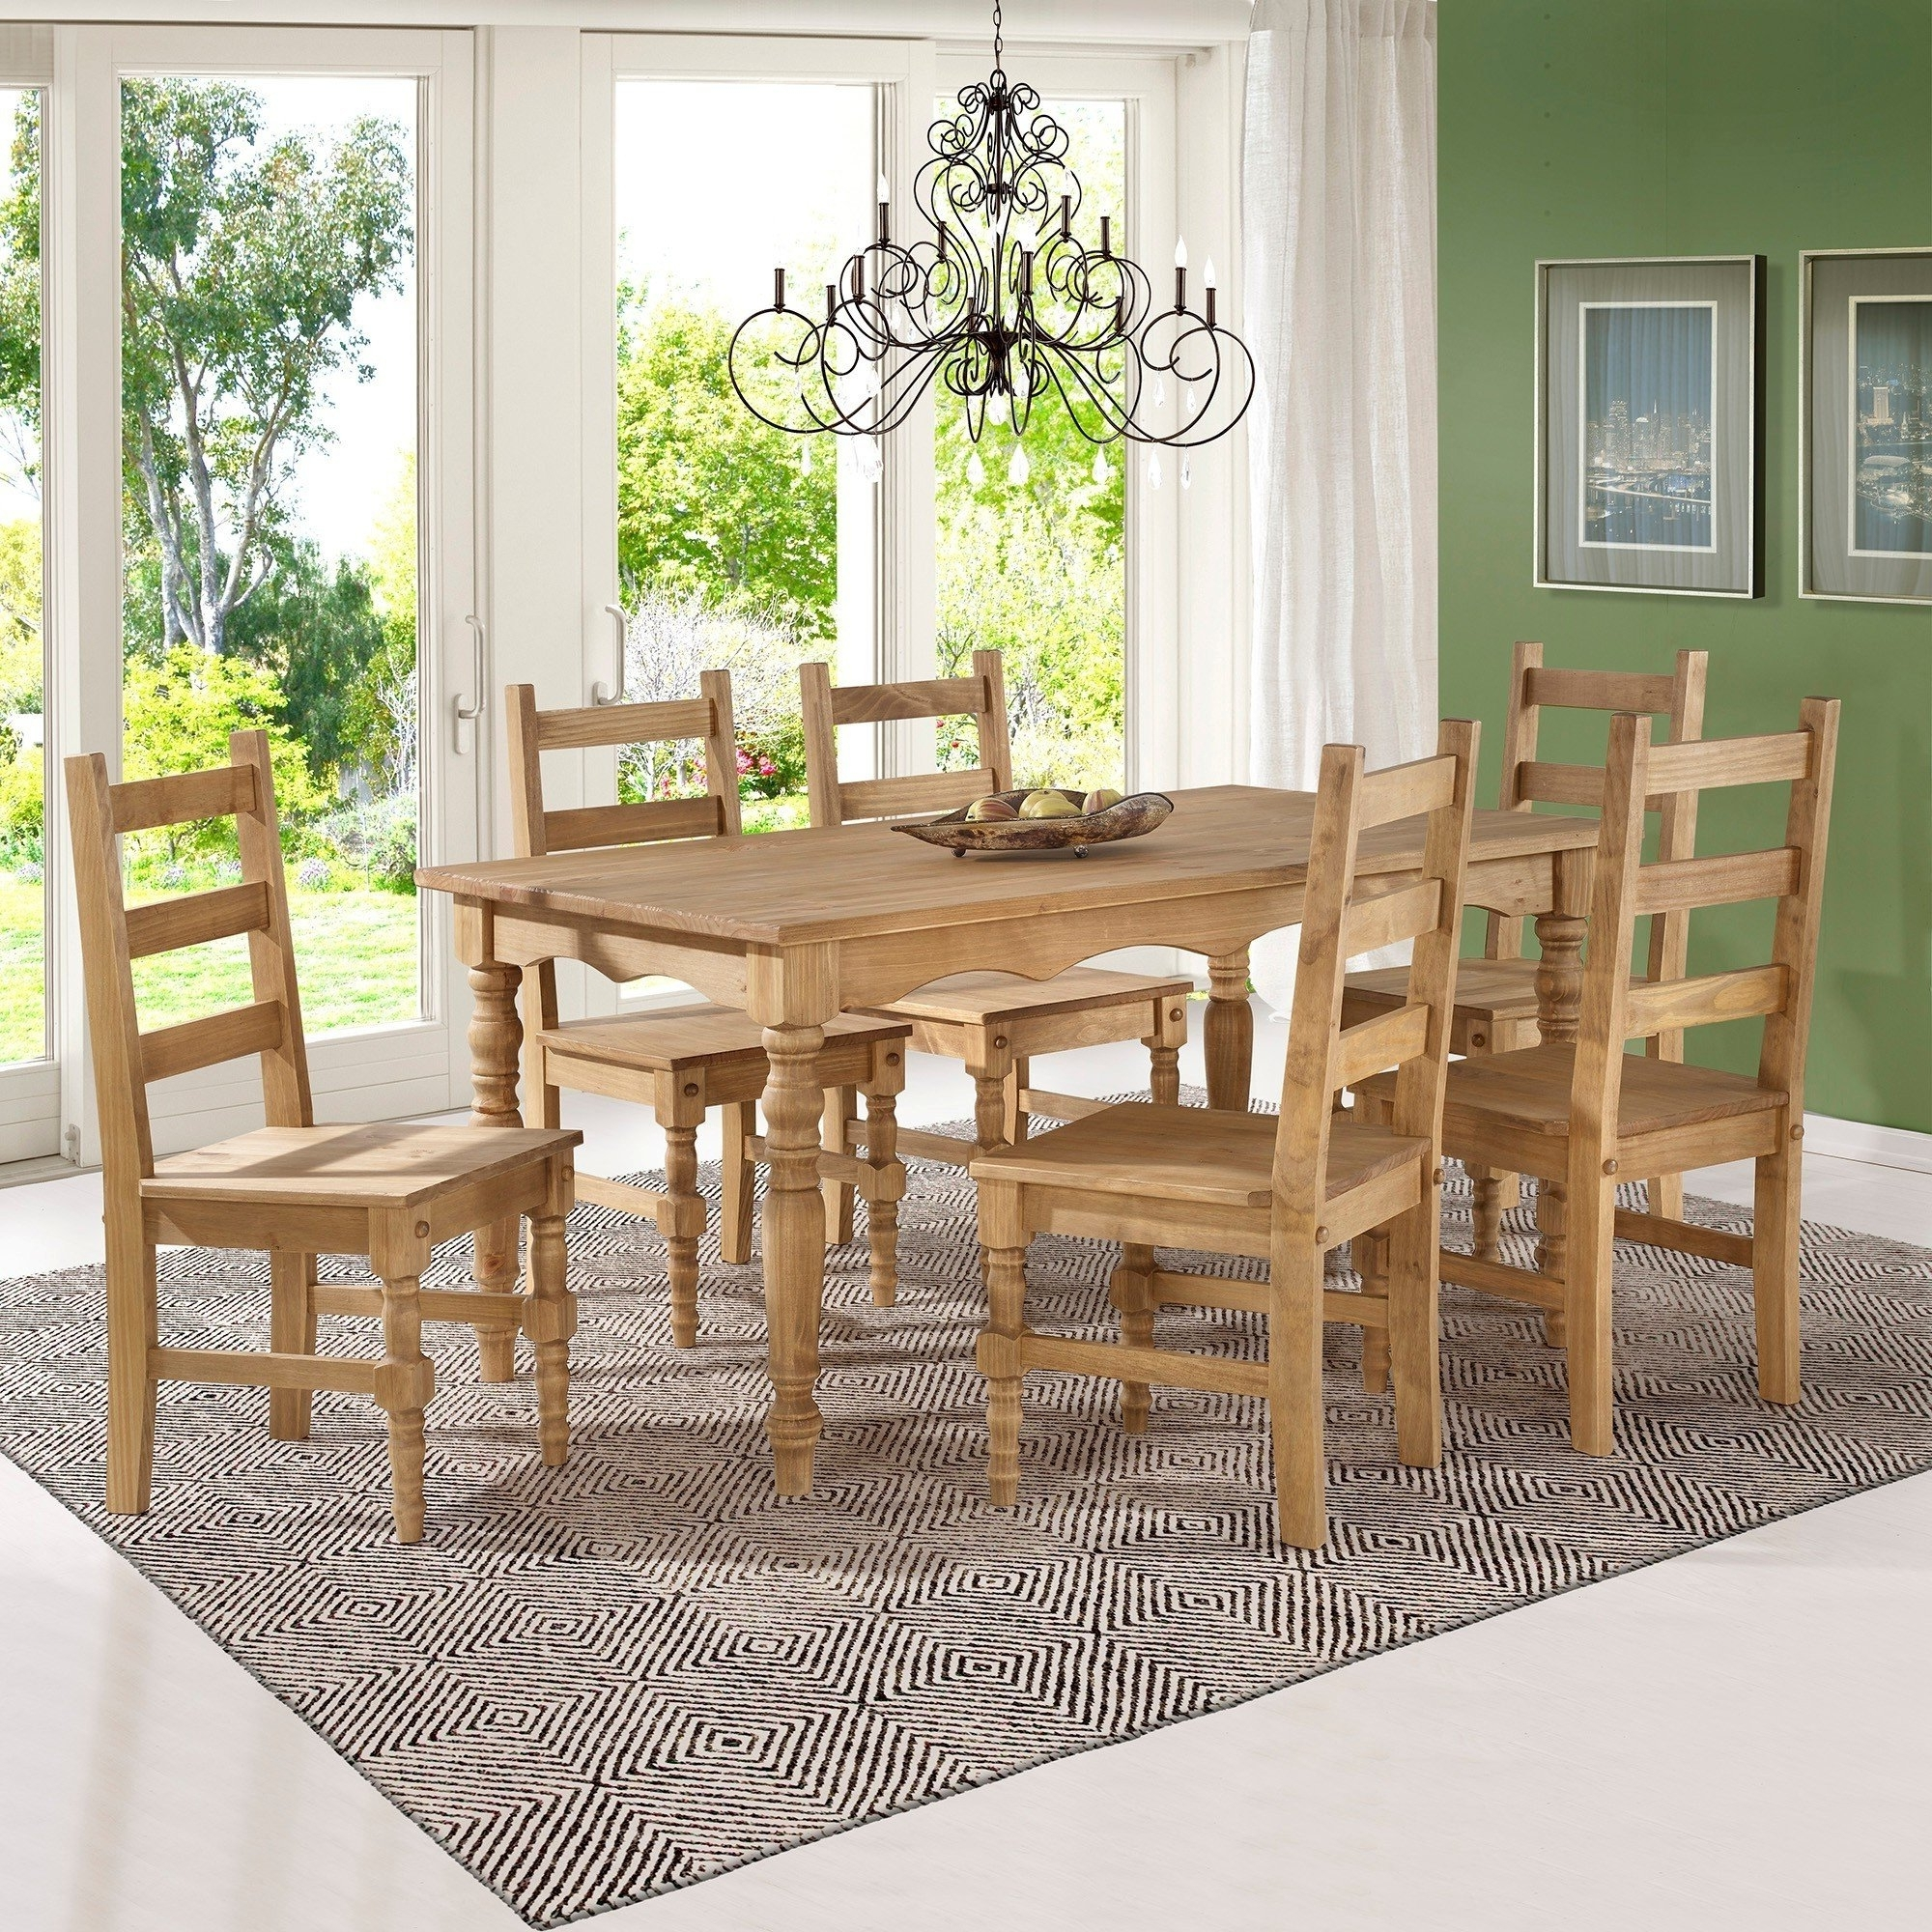 Most Recent Shop Manhattan Comfort Jay 7 Piece Solid Wood Dining Set With 6 In Helms 7 Piece Rectangle Dining Sets (View 18 of 25)